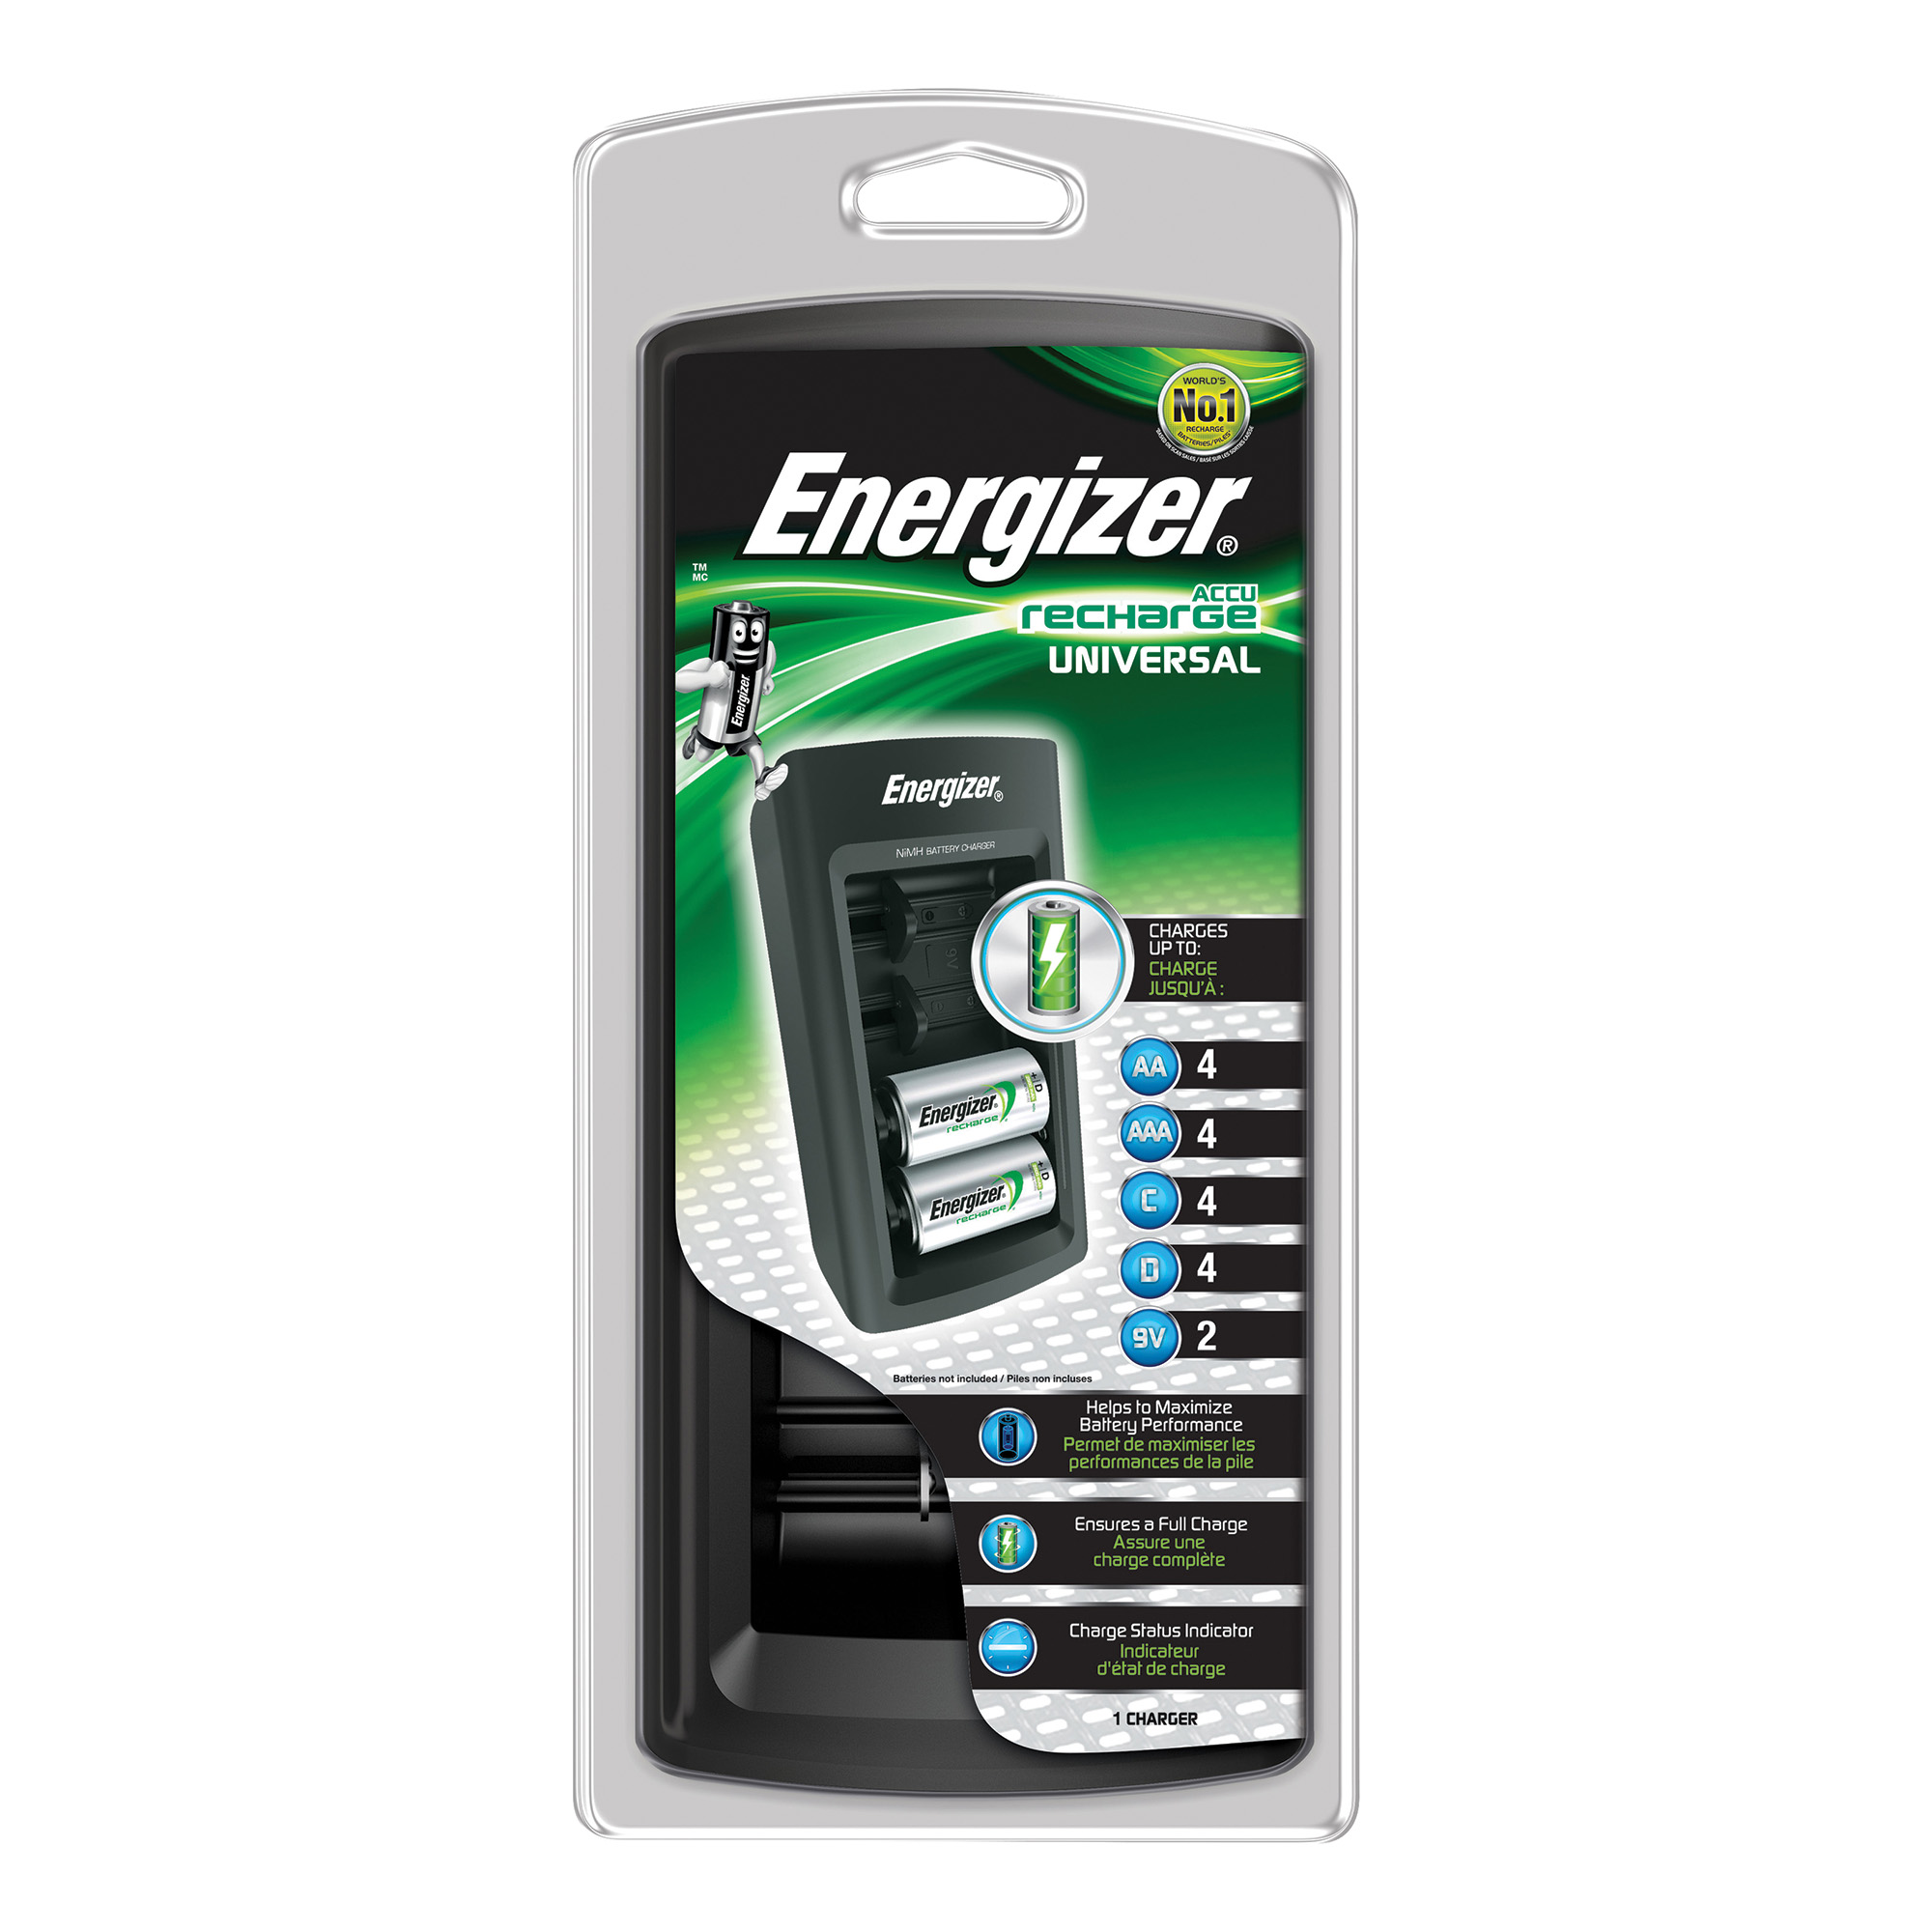 For All Sizes Energizer Universal Battery Charger CHEUF with Smart LED 2-5Hrs Time for AAA AA C D 9V Ref E301335700